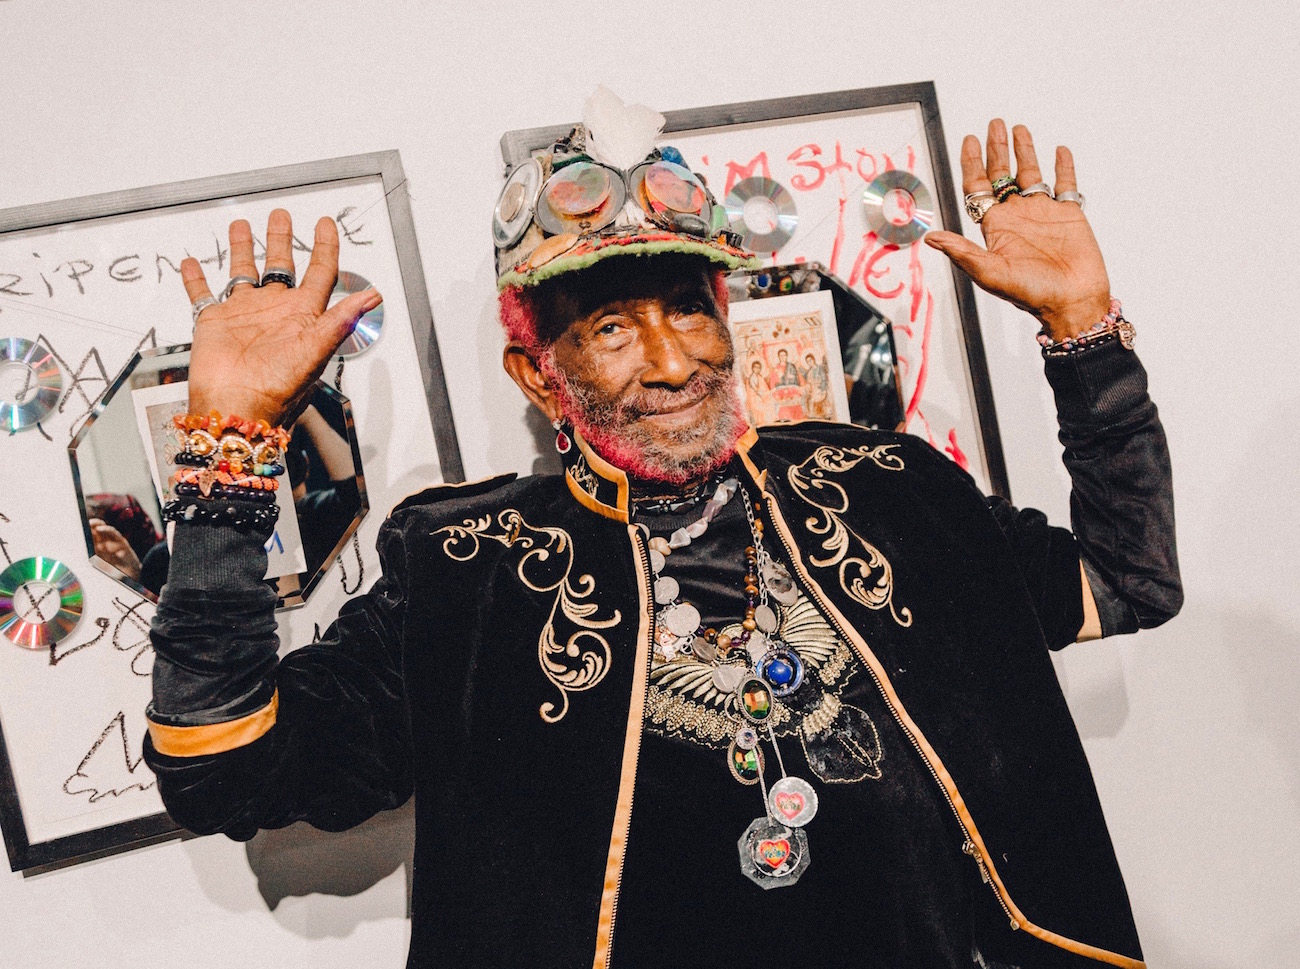 'Dub in Physical Form': Reggae Legend Lee 'Scratch' Perry Makes His Exhibition Debut in New York